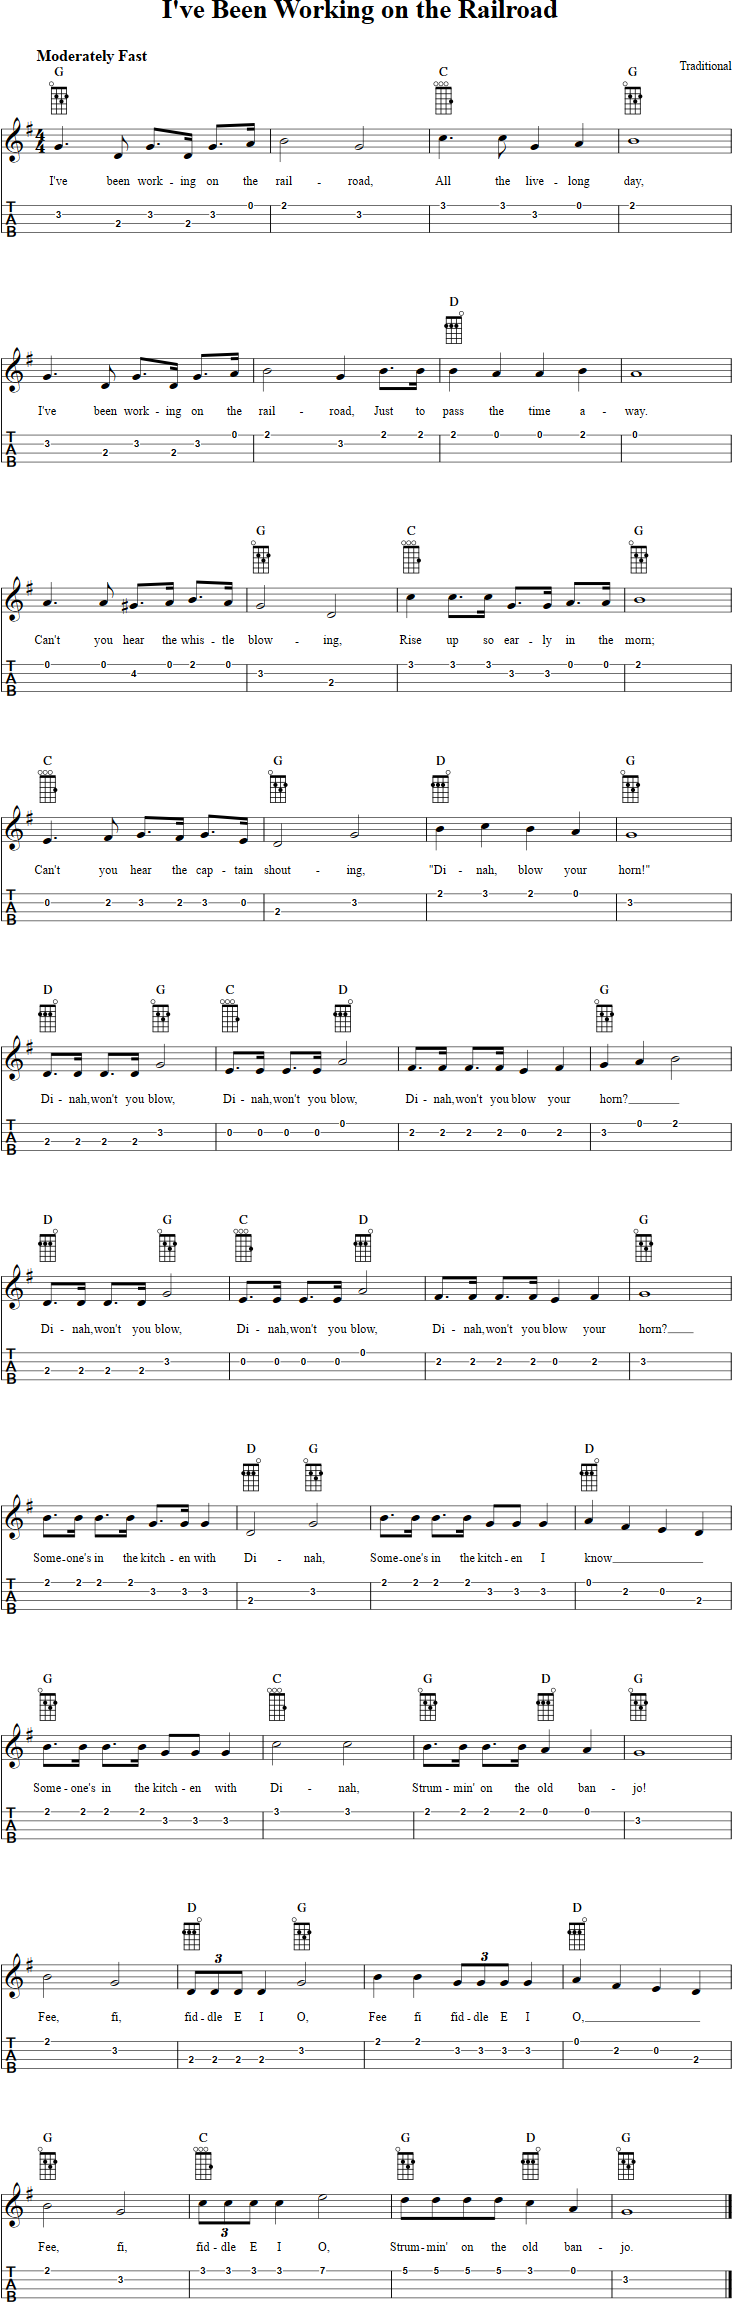 Ive been working on the railroad ukulele tab when i have time free ukulele sheet music for ive been working on the railroad with chord diagrams lyrics and tablature hexwebz Gallery